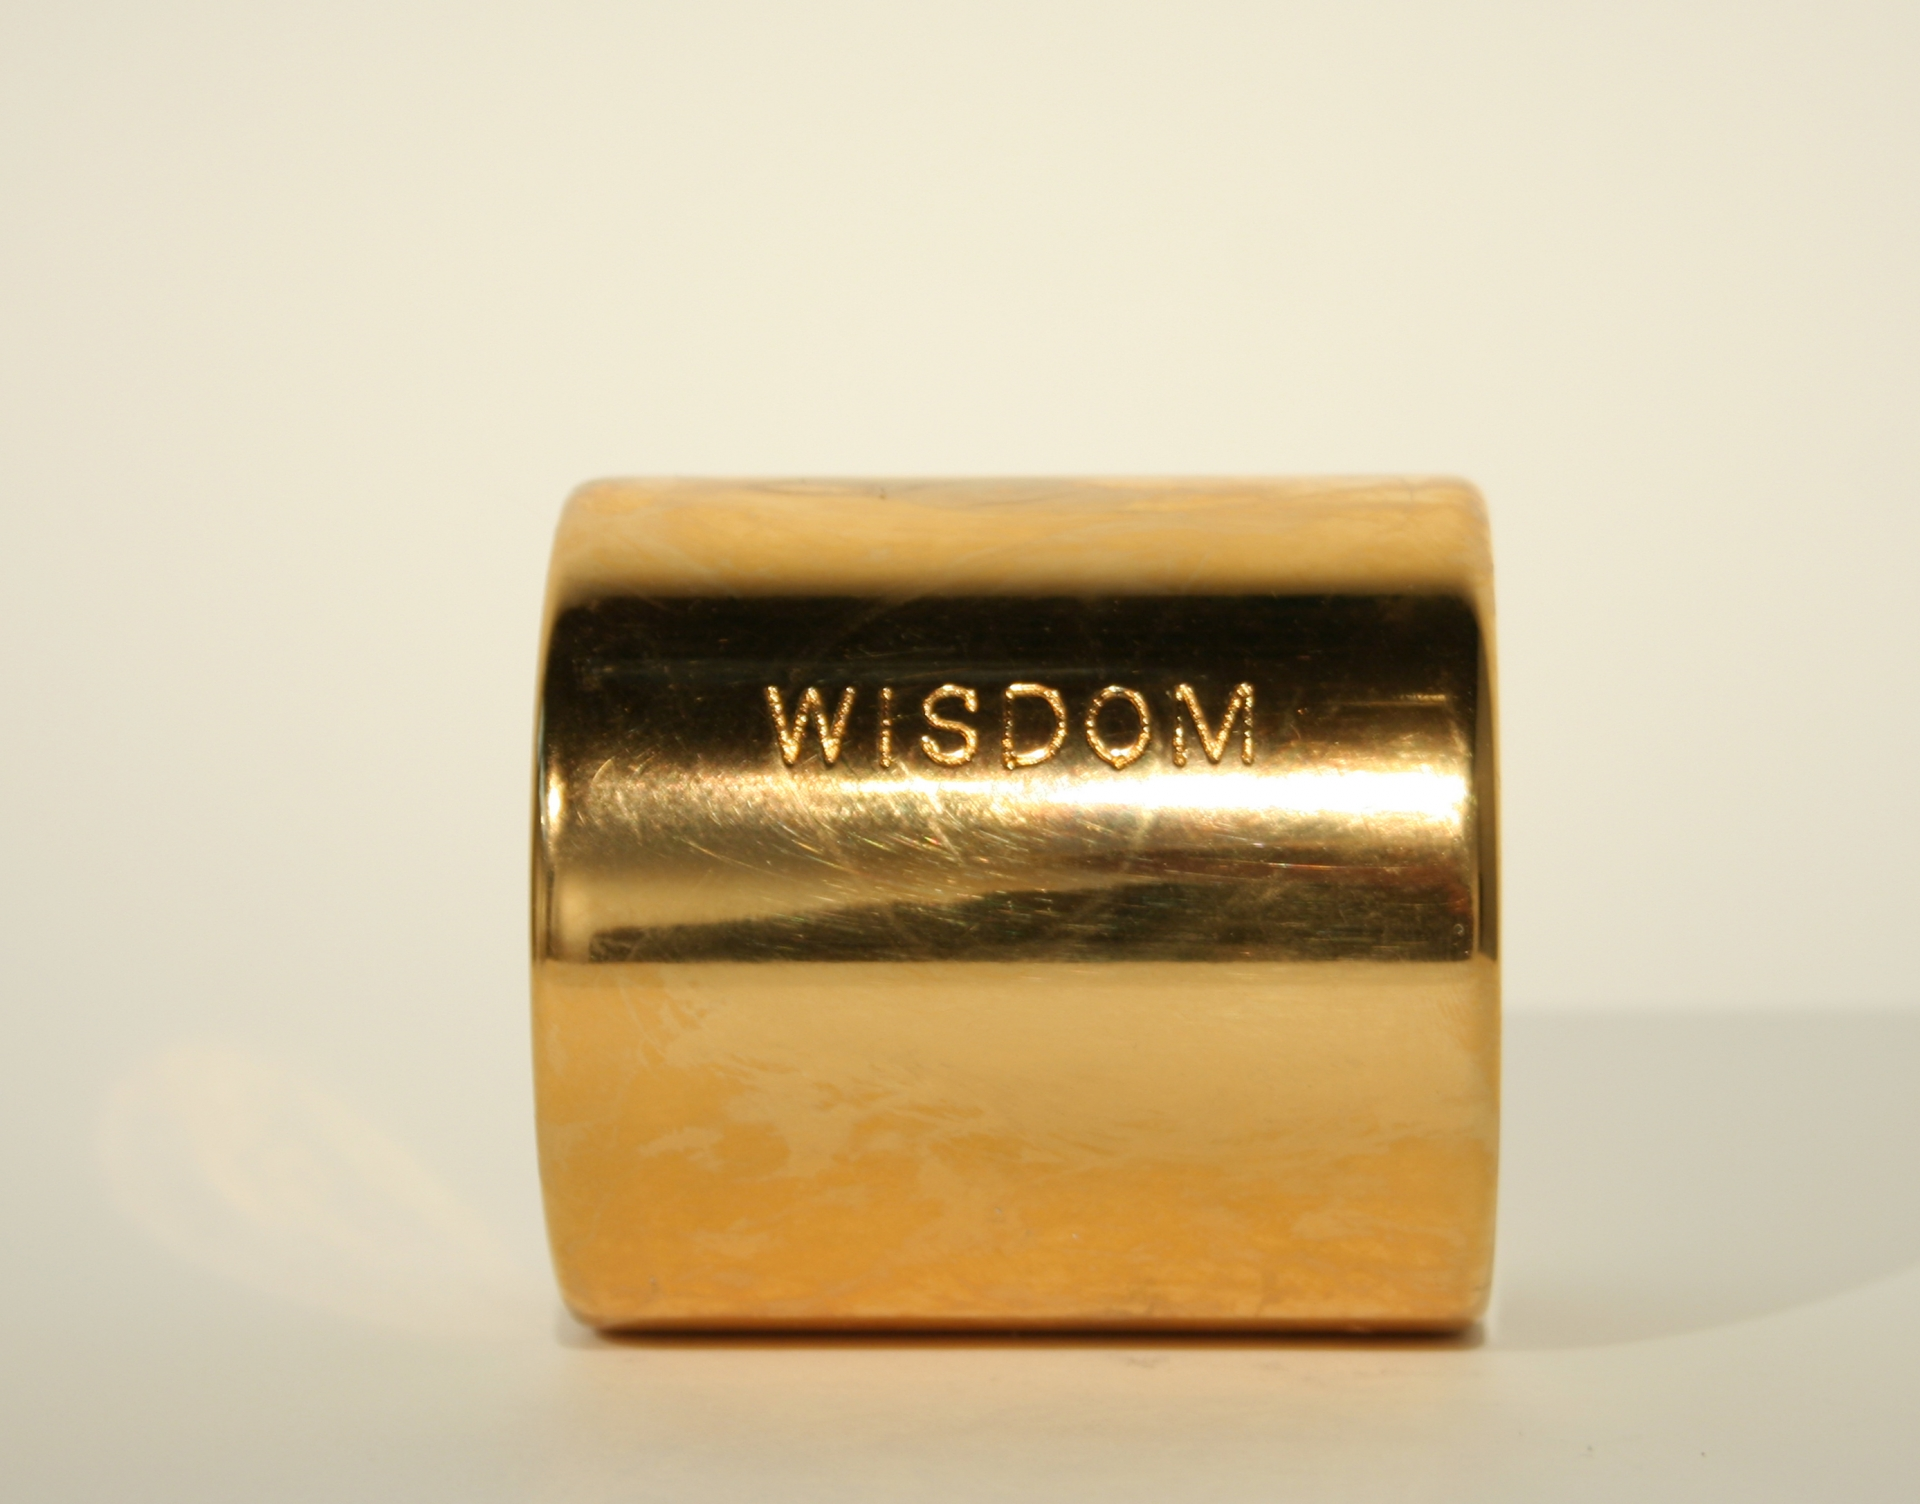 Wisdom, 1970-now, steel with gold plating